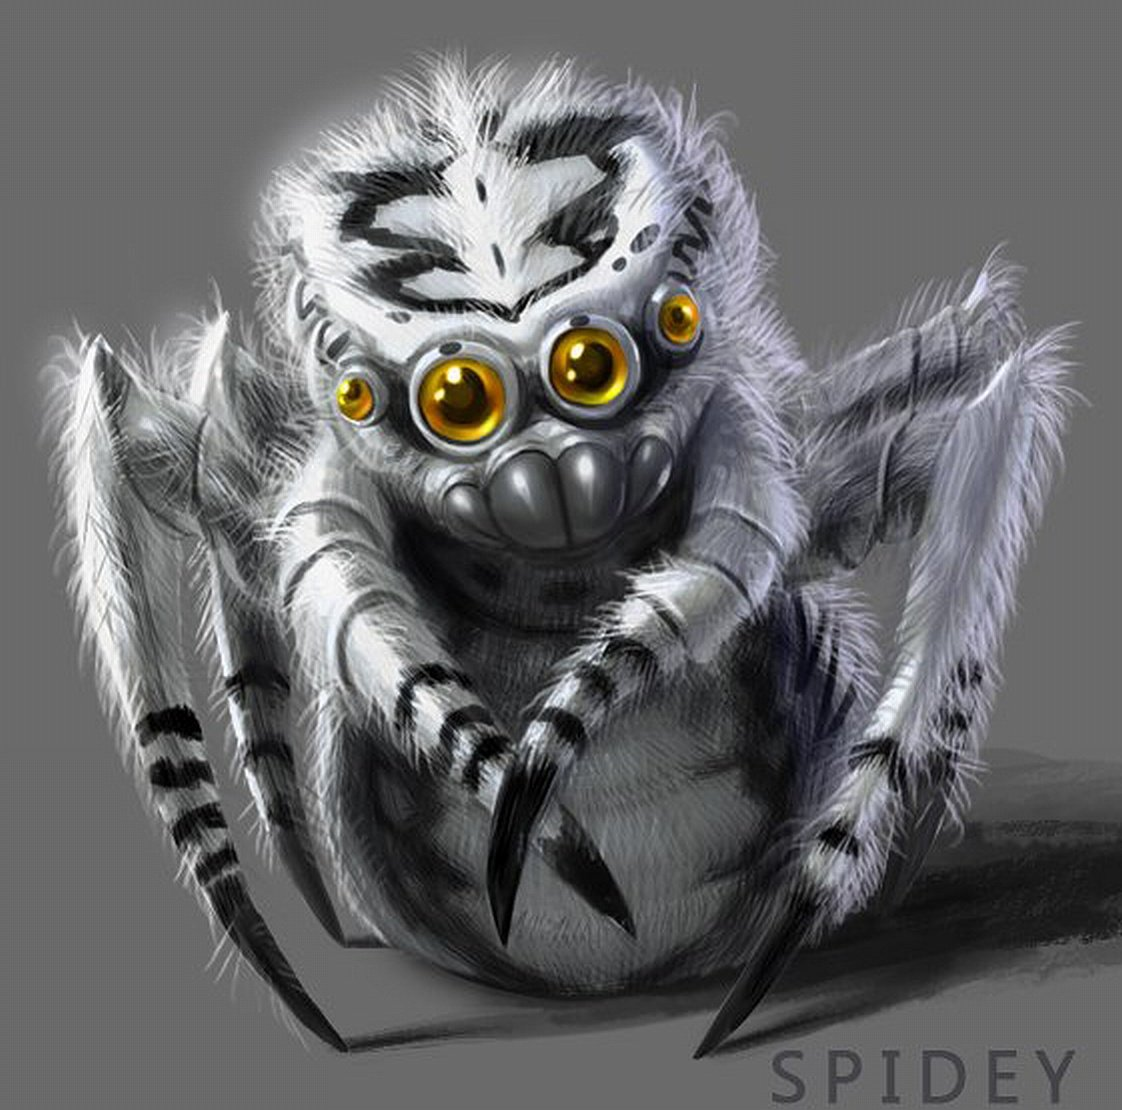 Spidey Partner Concept Art